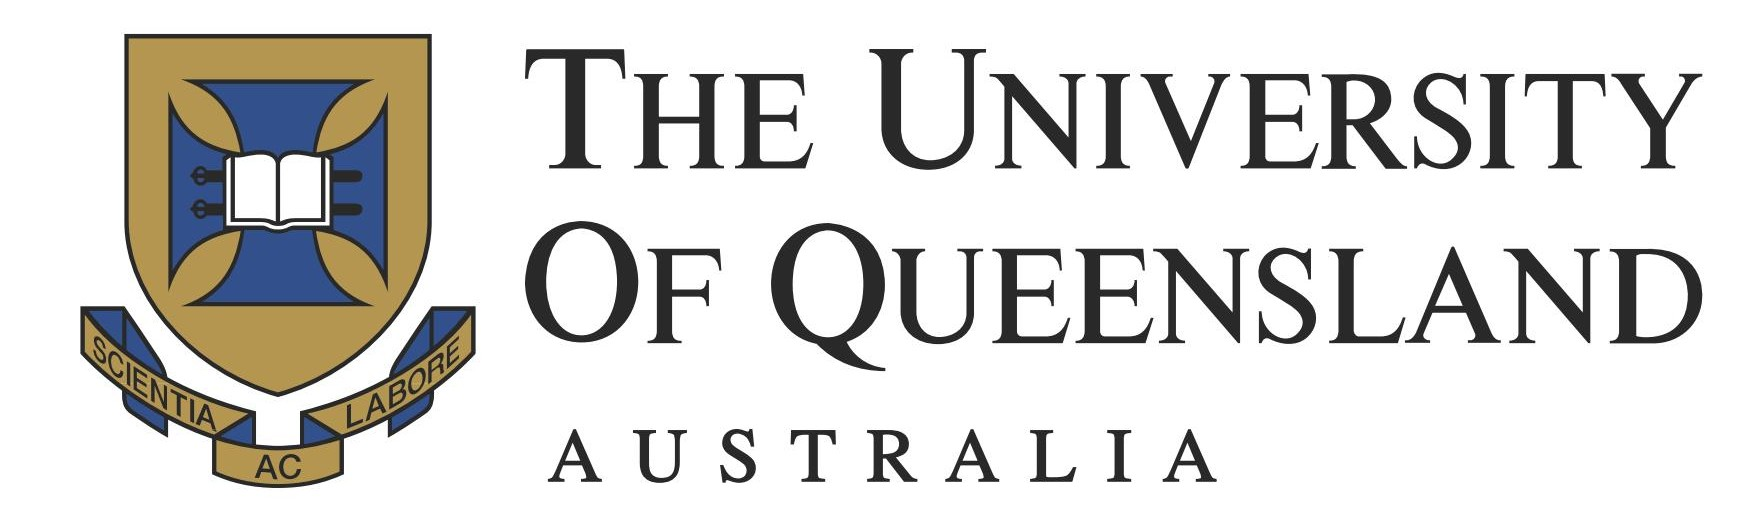 University-of-Queensland-UQ-logo.jpg